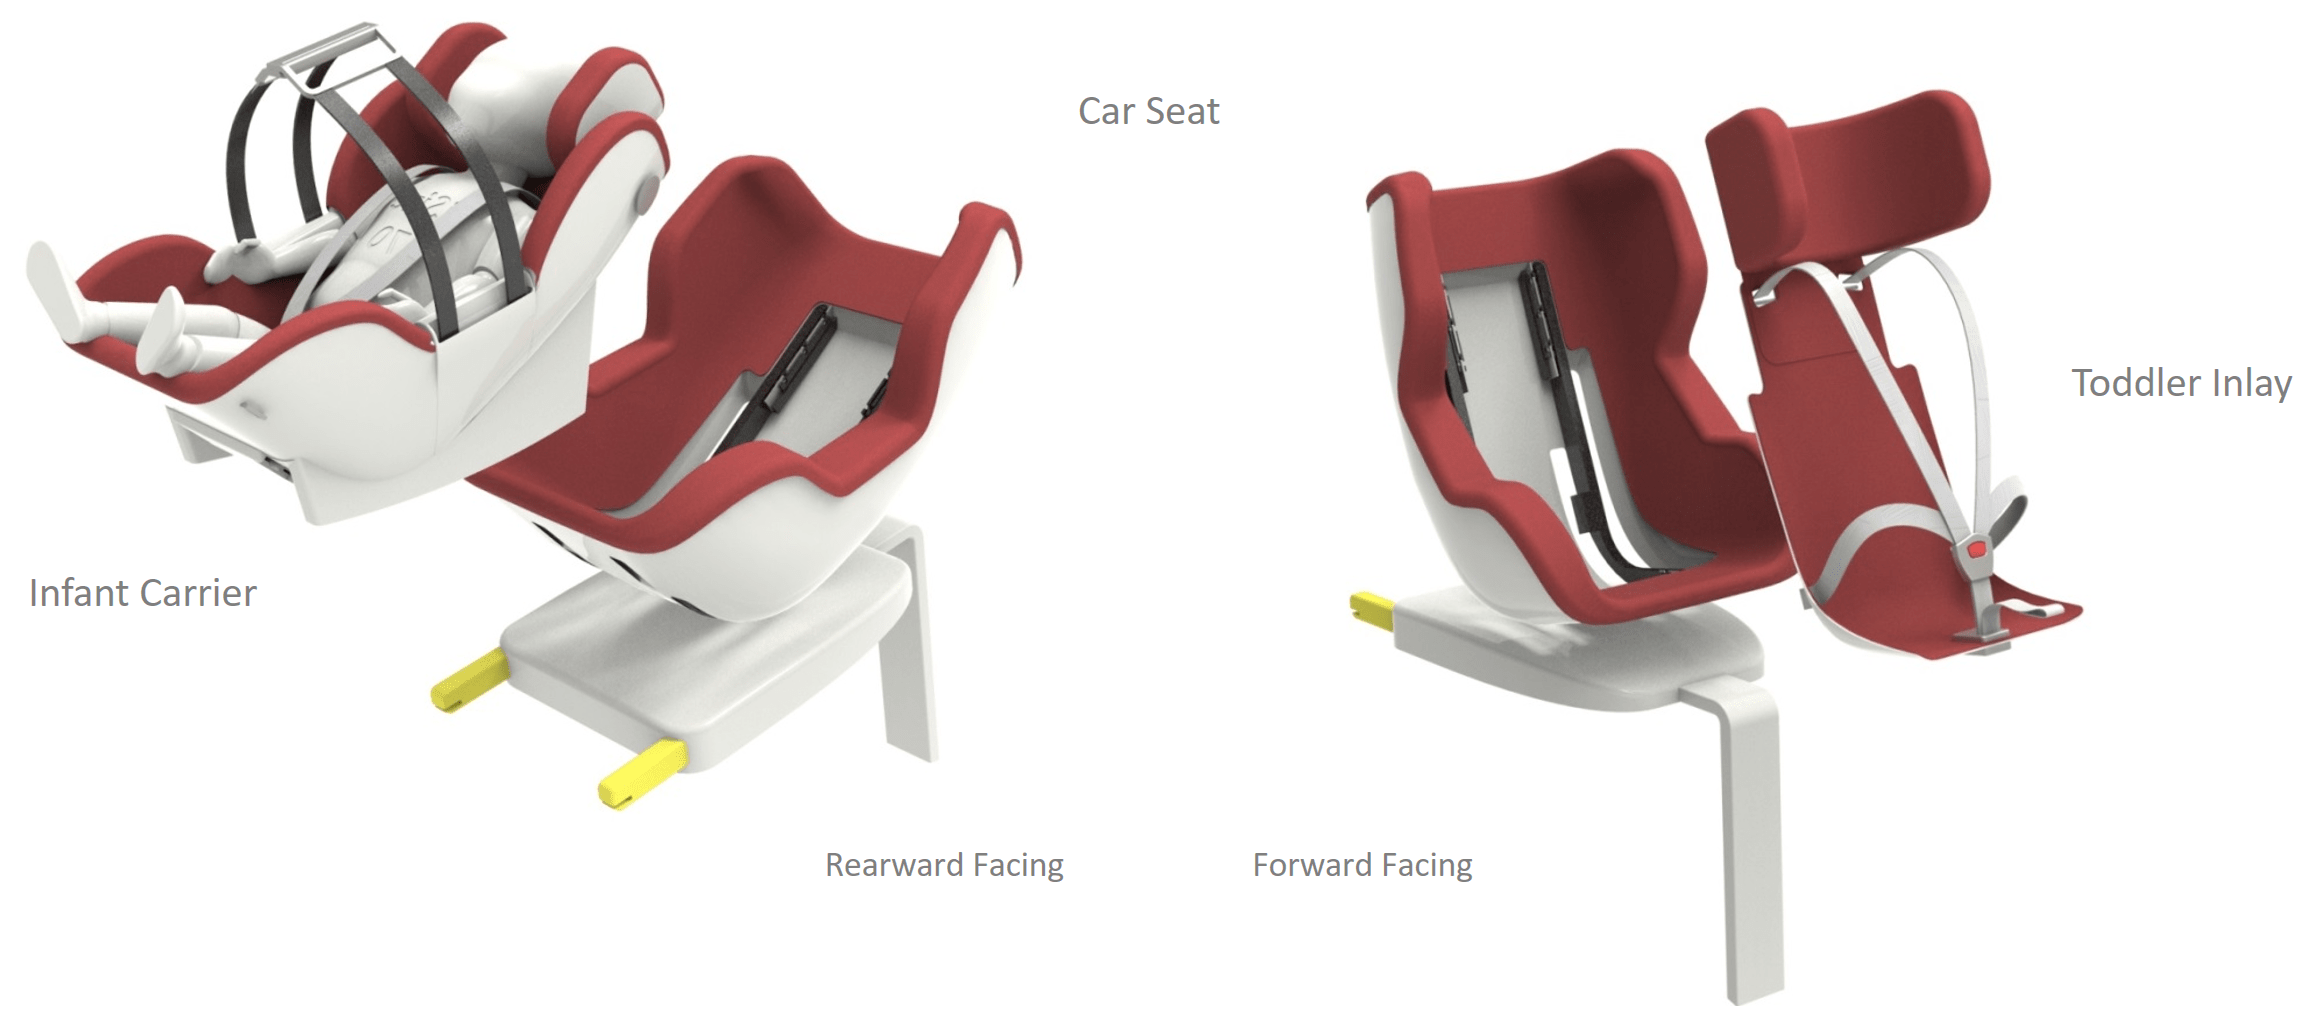 car-seat-Child-Restraint-System-final-concept